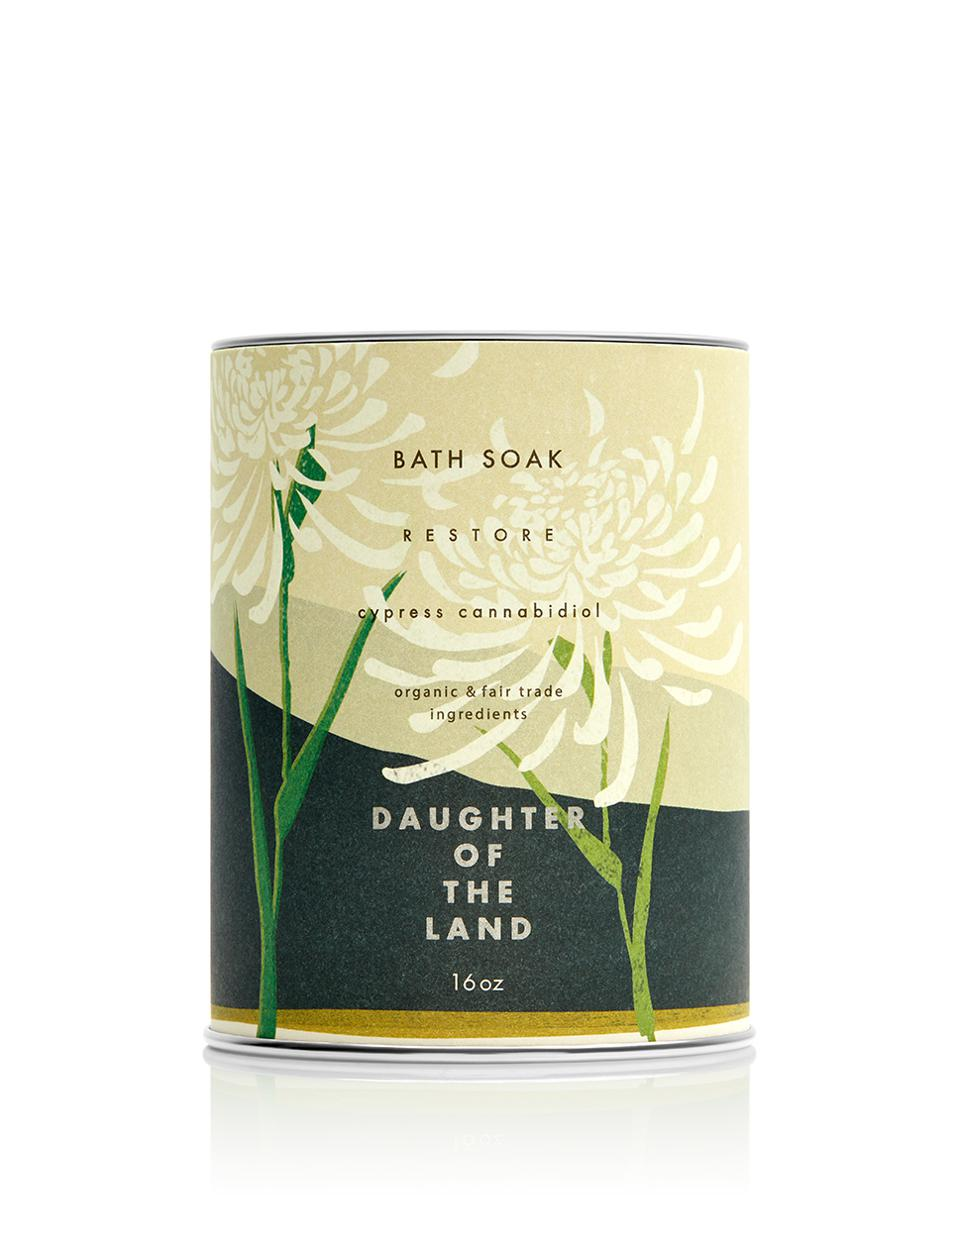 Daughter of the Land, CBD wellness, CBD bath soaks, luxury cannabis, Mother's Day gifts